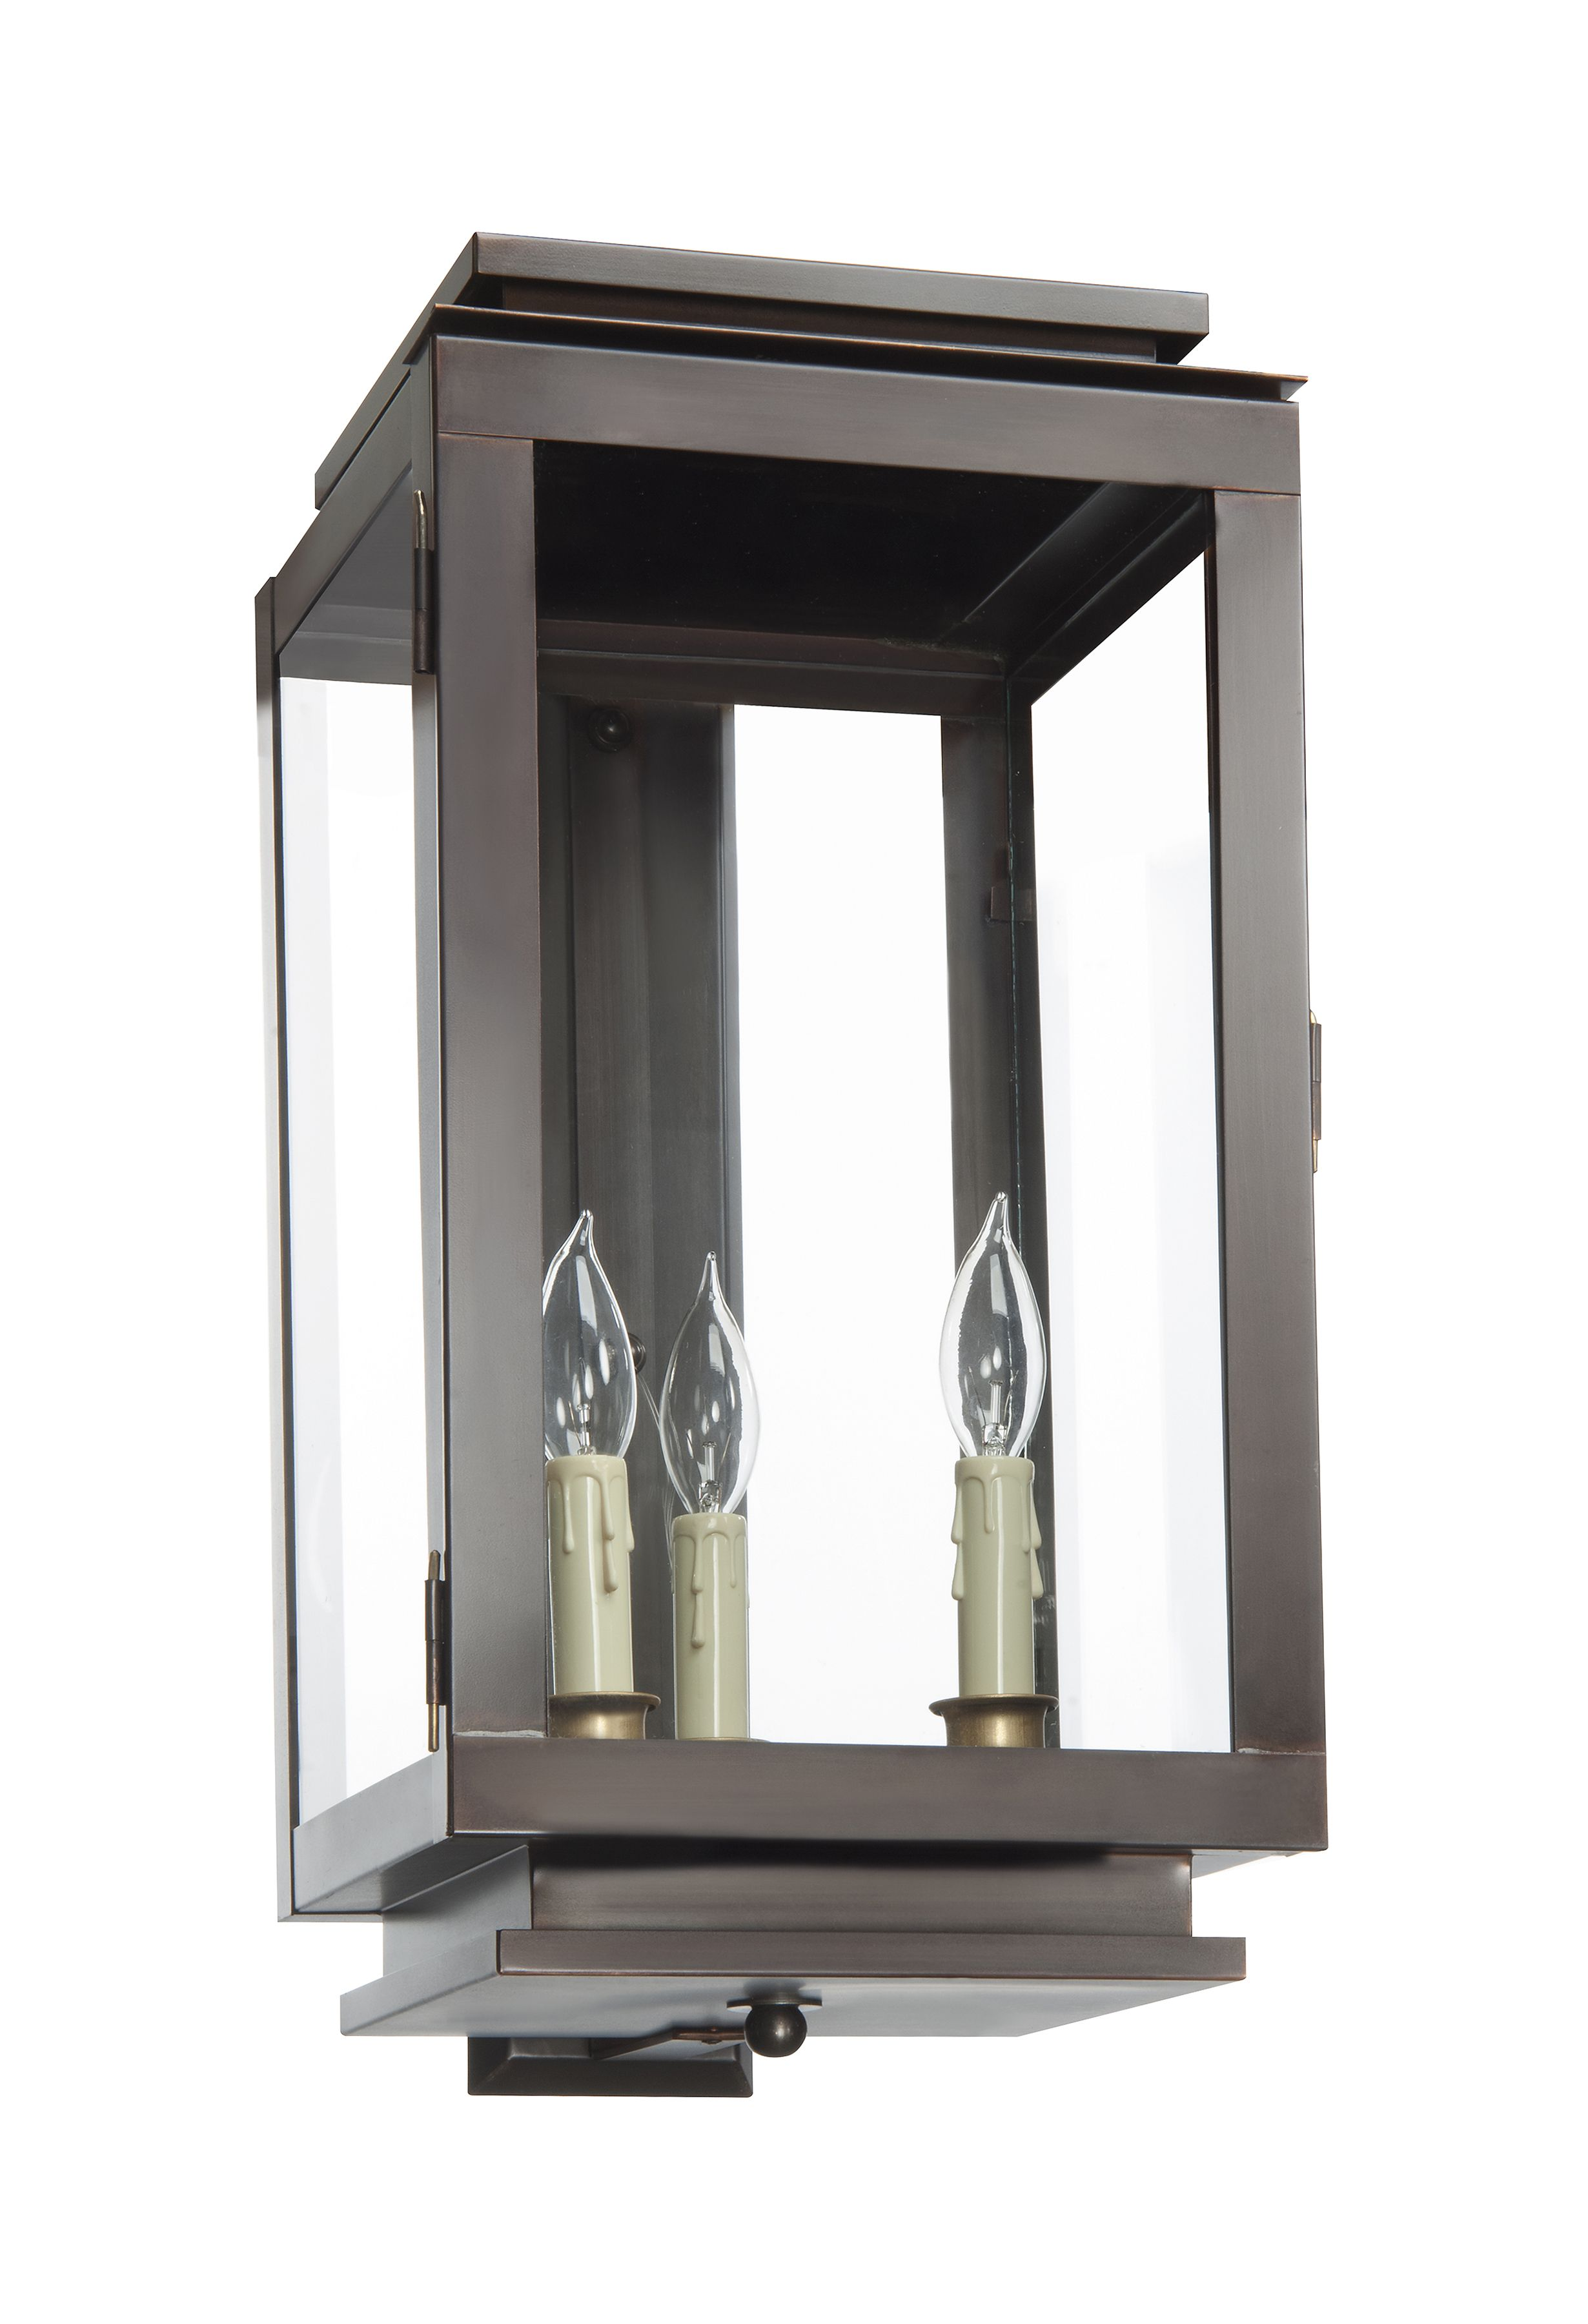 Alpin cities collection a 31 electric wall mount lantern copper alpin cities collection a 31 electric wall mount lantern copper lantern gas flame lantern modern gas lantern contemporary lantern contemporary post light aloadofball Images